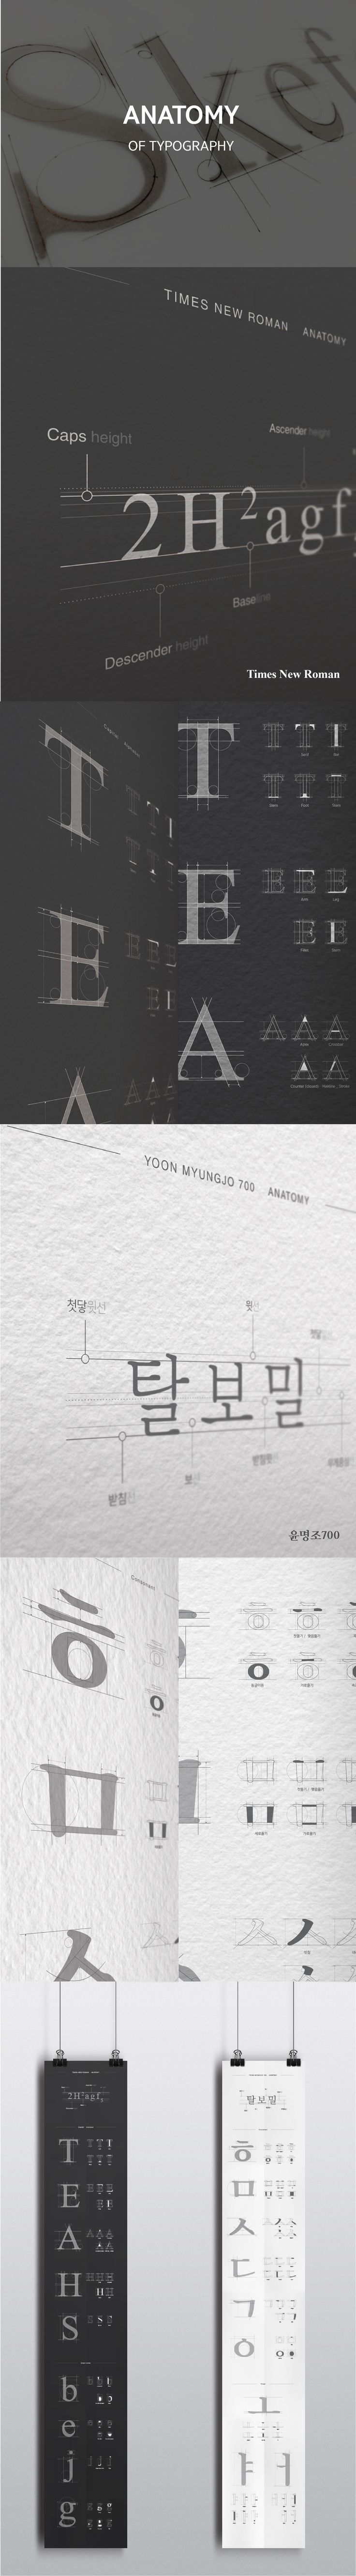 김나은│ Typography Design 2015│ Major in Digital Media Design│#hicoda │hicoda.hongik.ac.kr